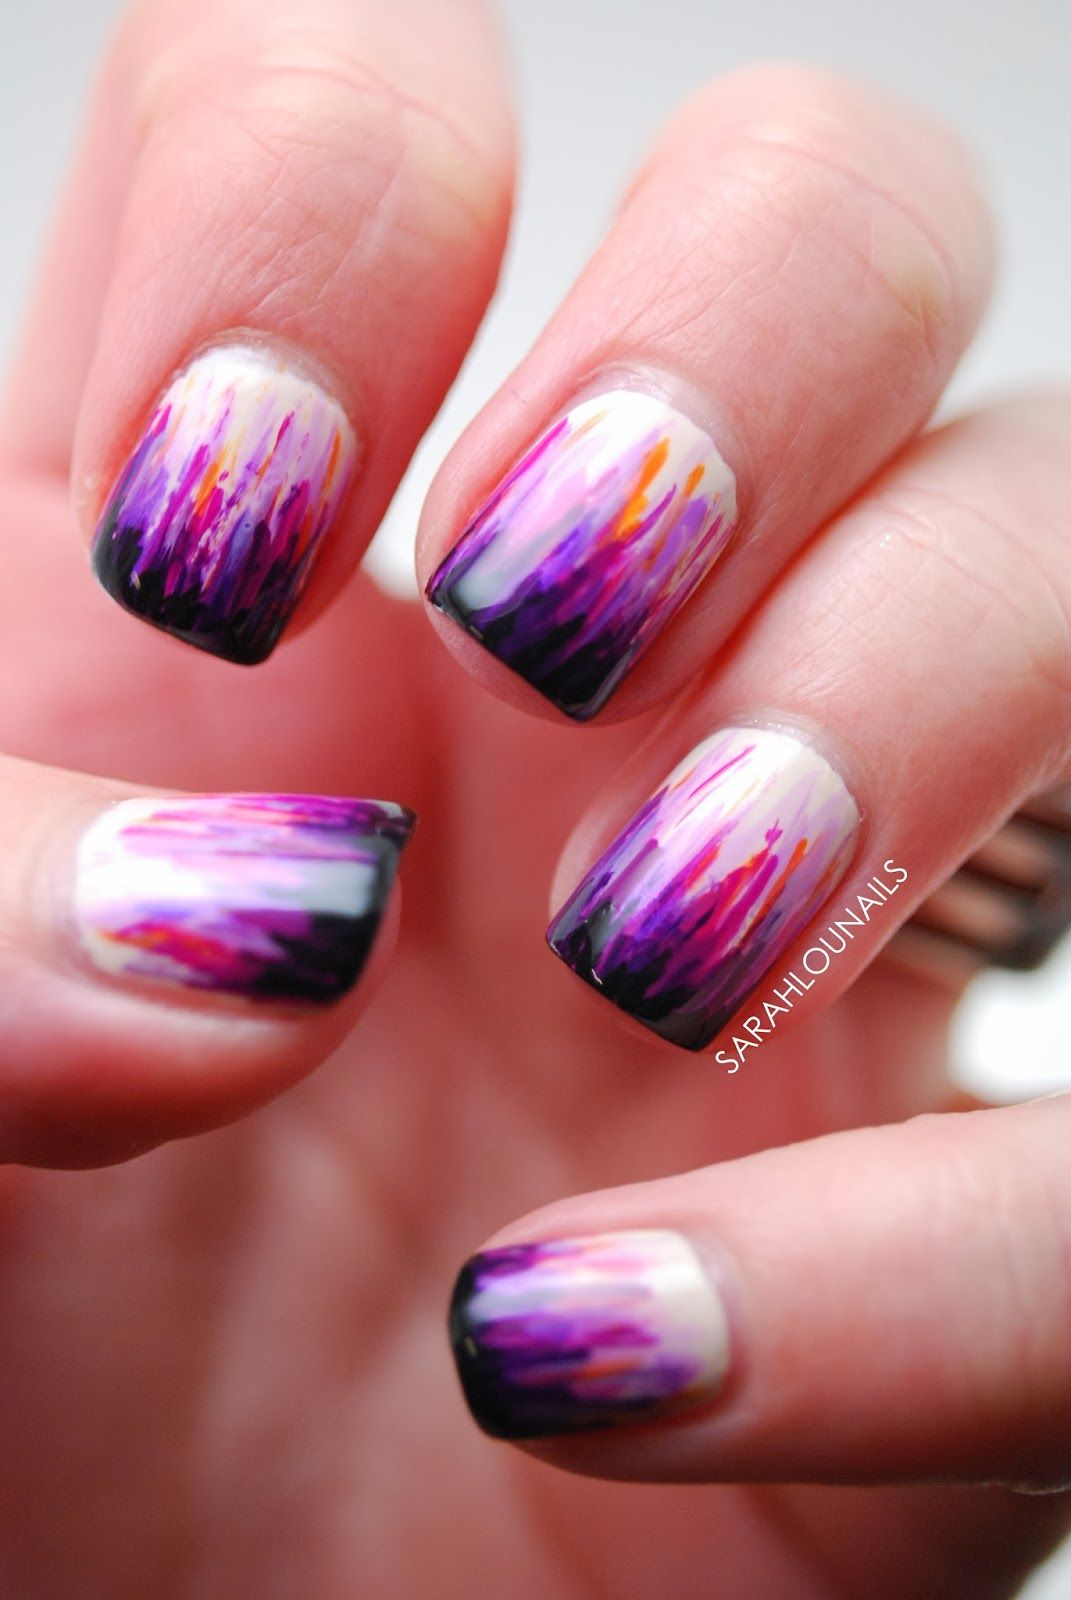 How To Do Ombre Nail Art At Home Ombre Nail Art Ombre And French